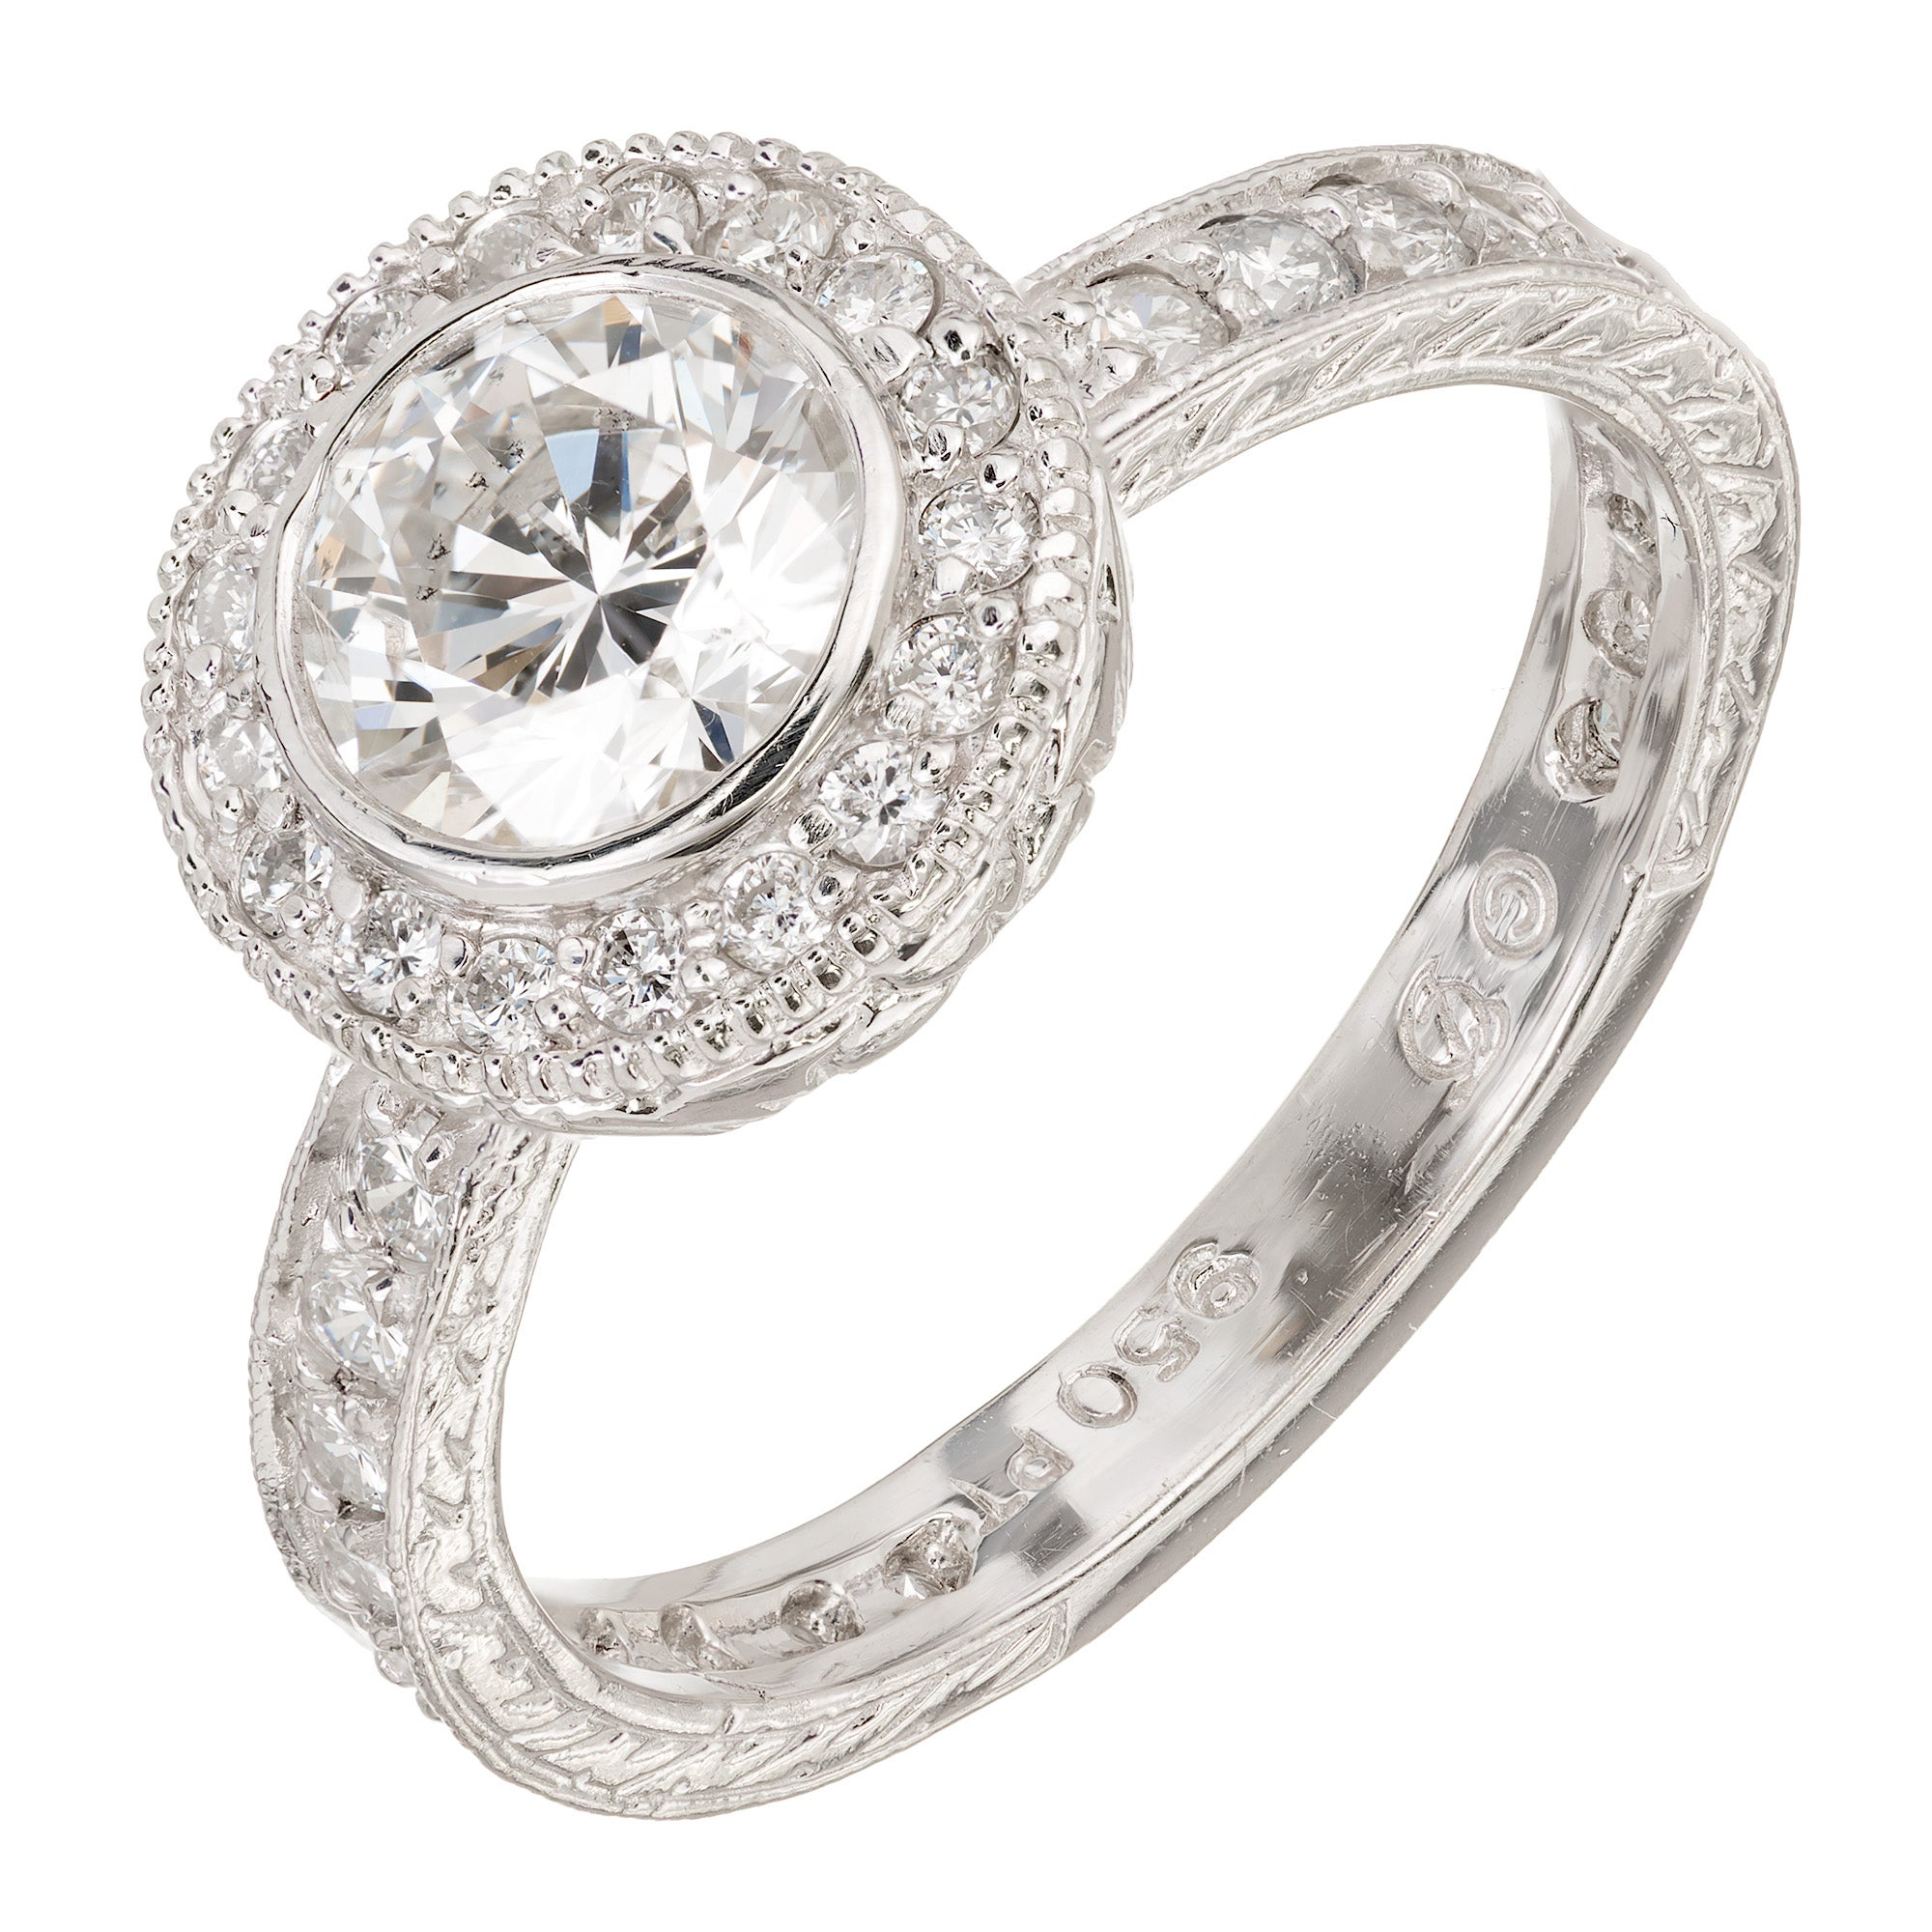 solitaire rings engagement ring mounting silverscape mounted img products designs diamond